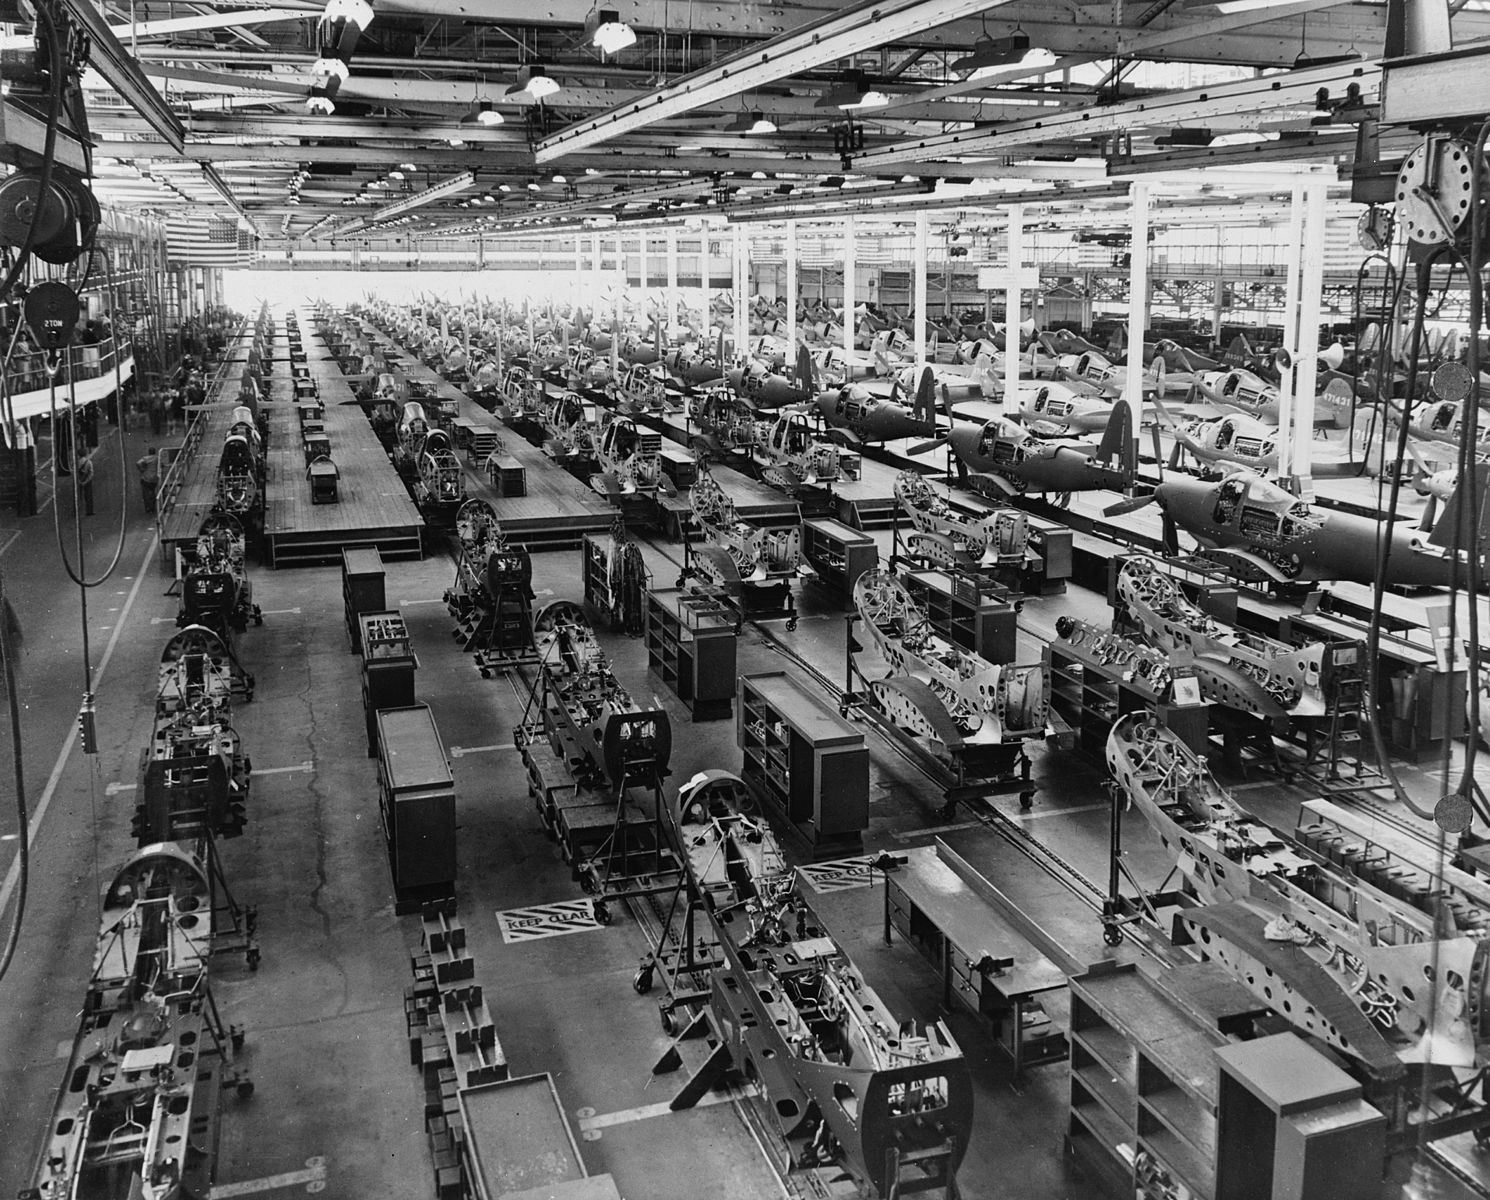 Image of a US factory of the early 20th century